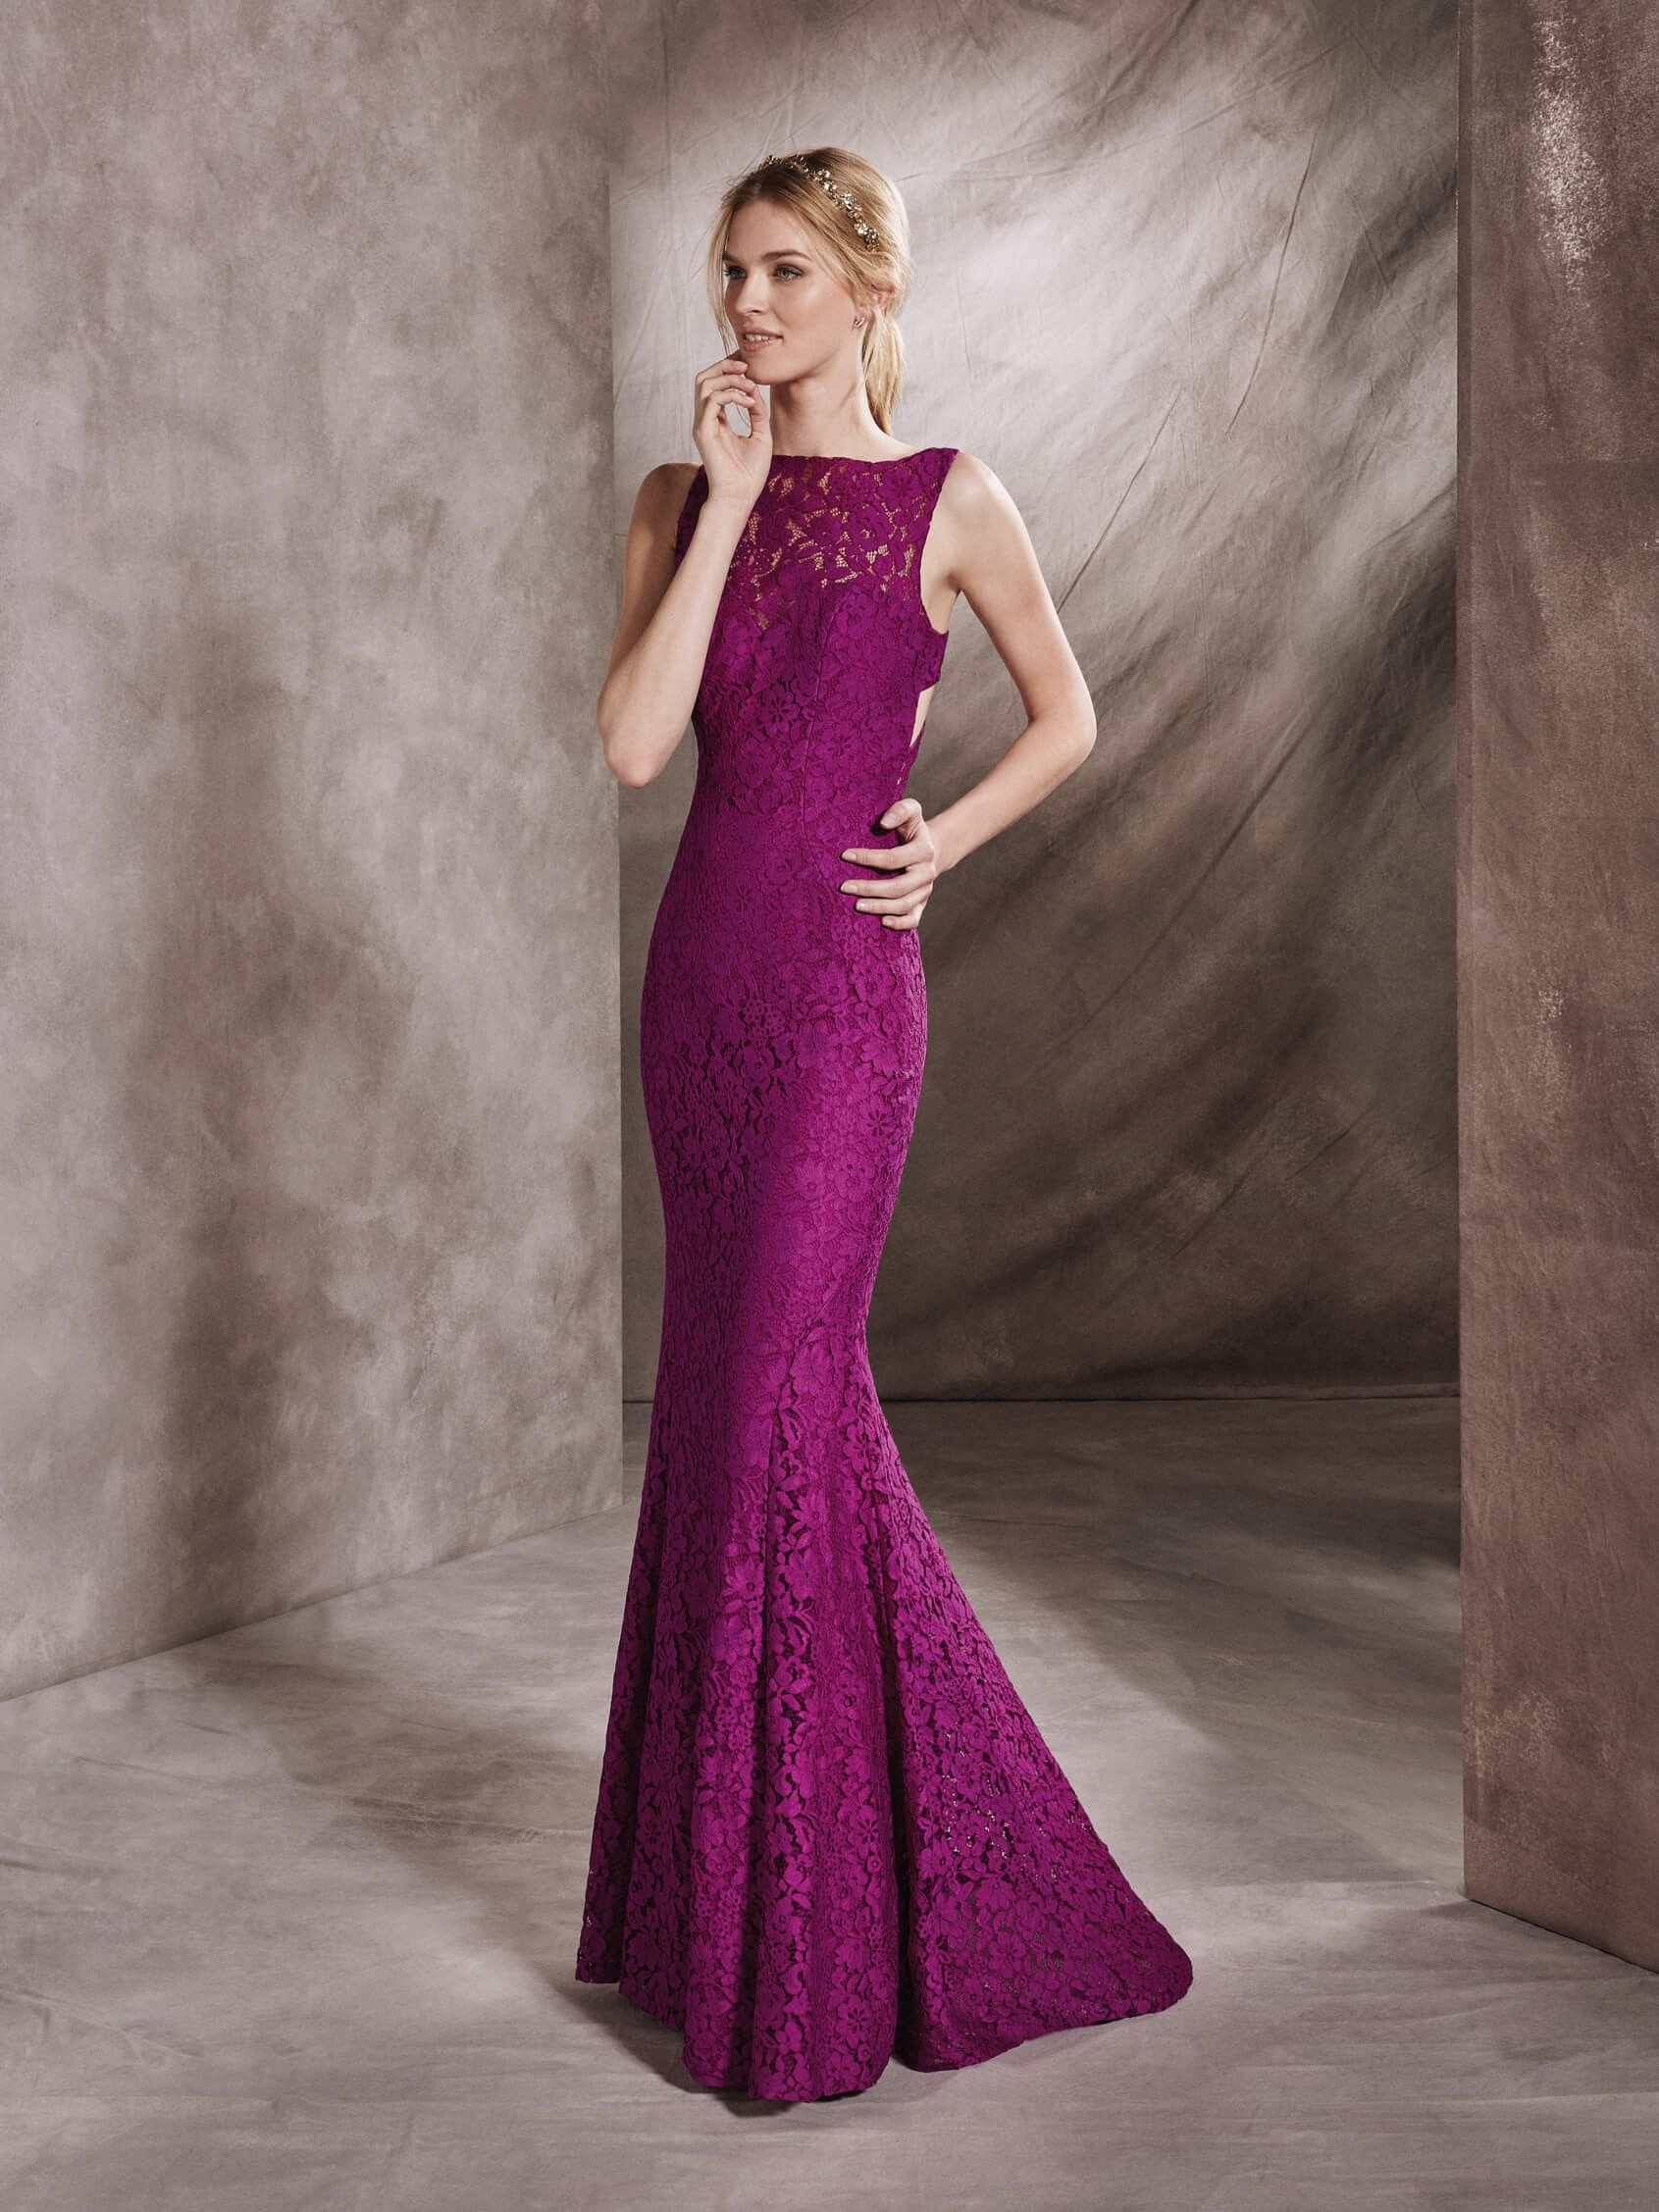 St. Patrick | Mermaid style cocktail dress in lace with bateau ...